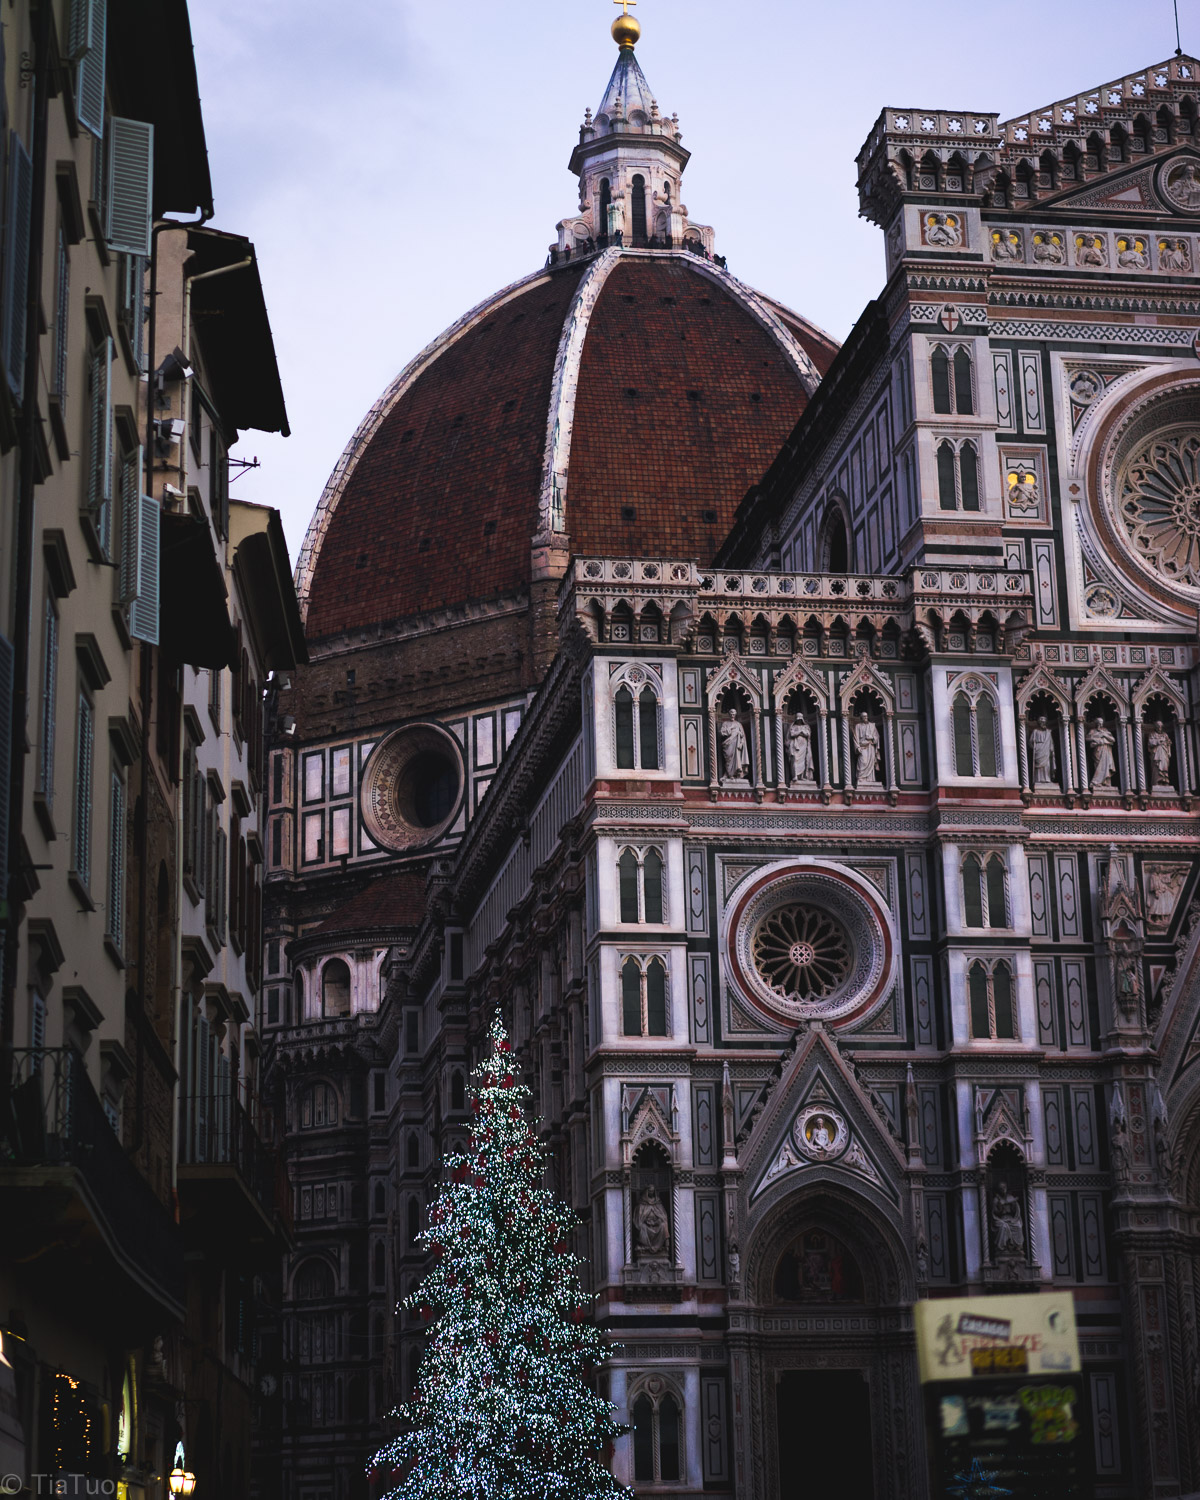 Il Duomo in Florence, Tuscany